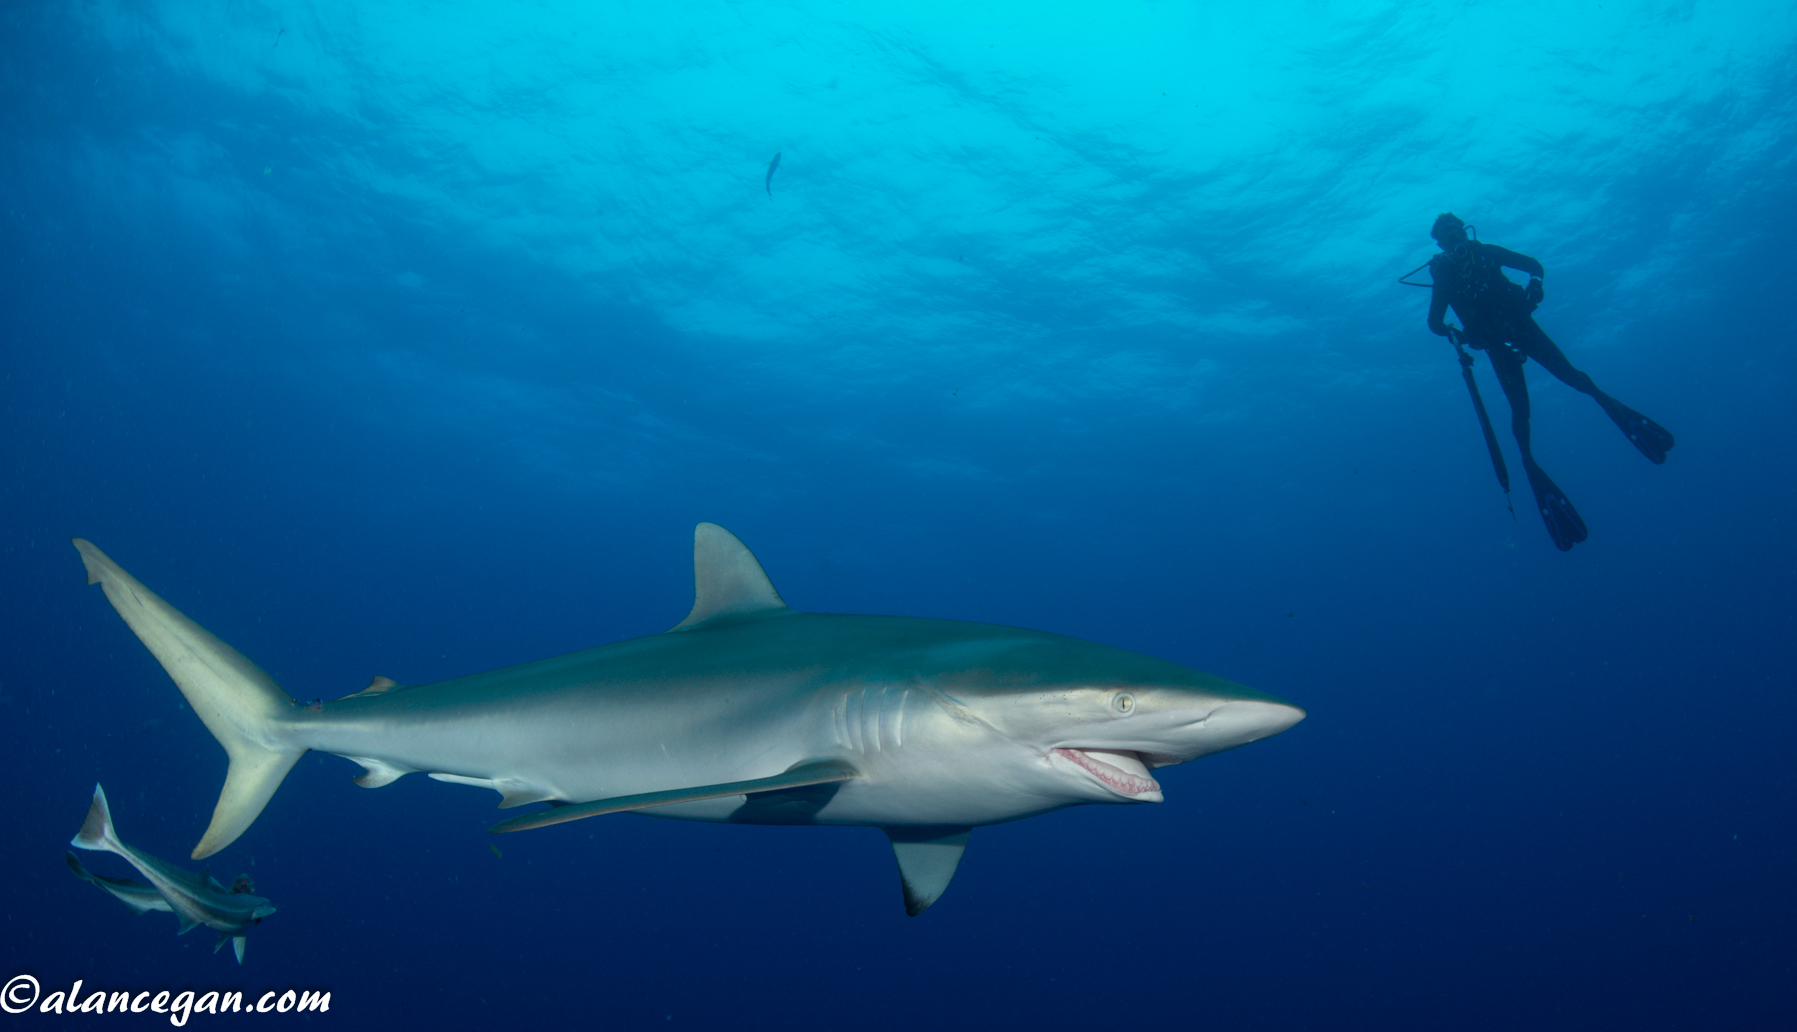 Photograph of a Silky Shark with a broken jaw